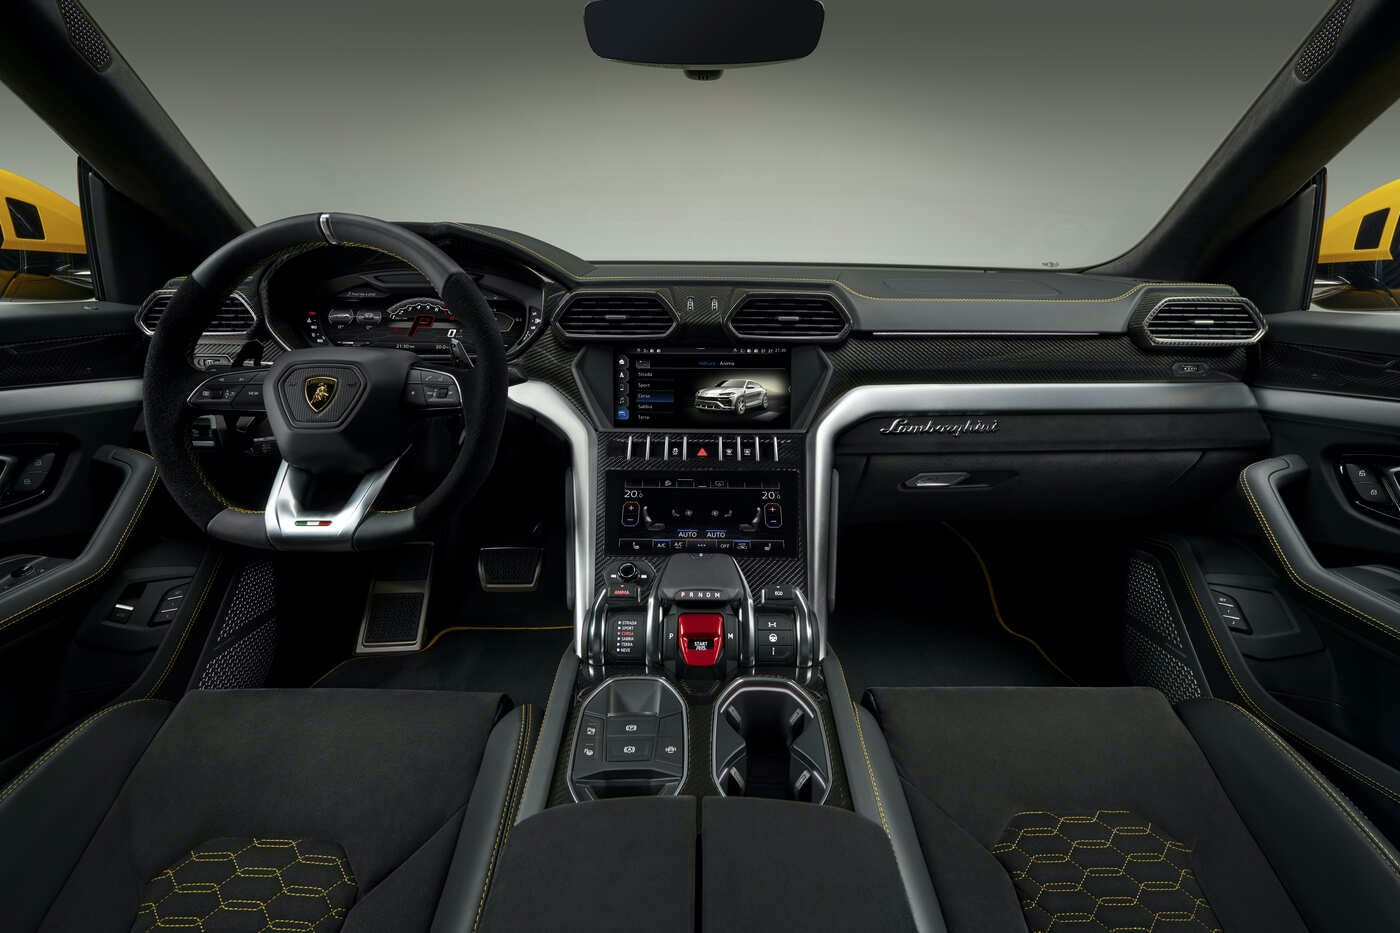 2019 Lamborghini Urus Comparisons, Reviews \u0026 Pictures